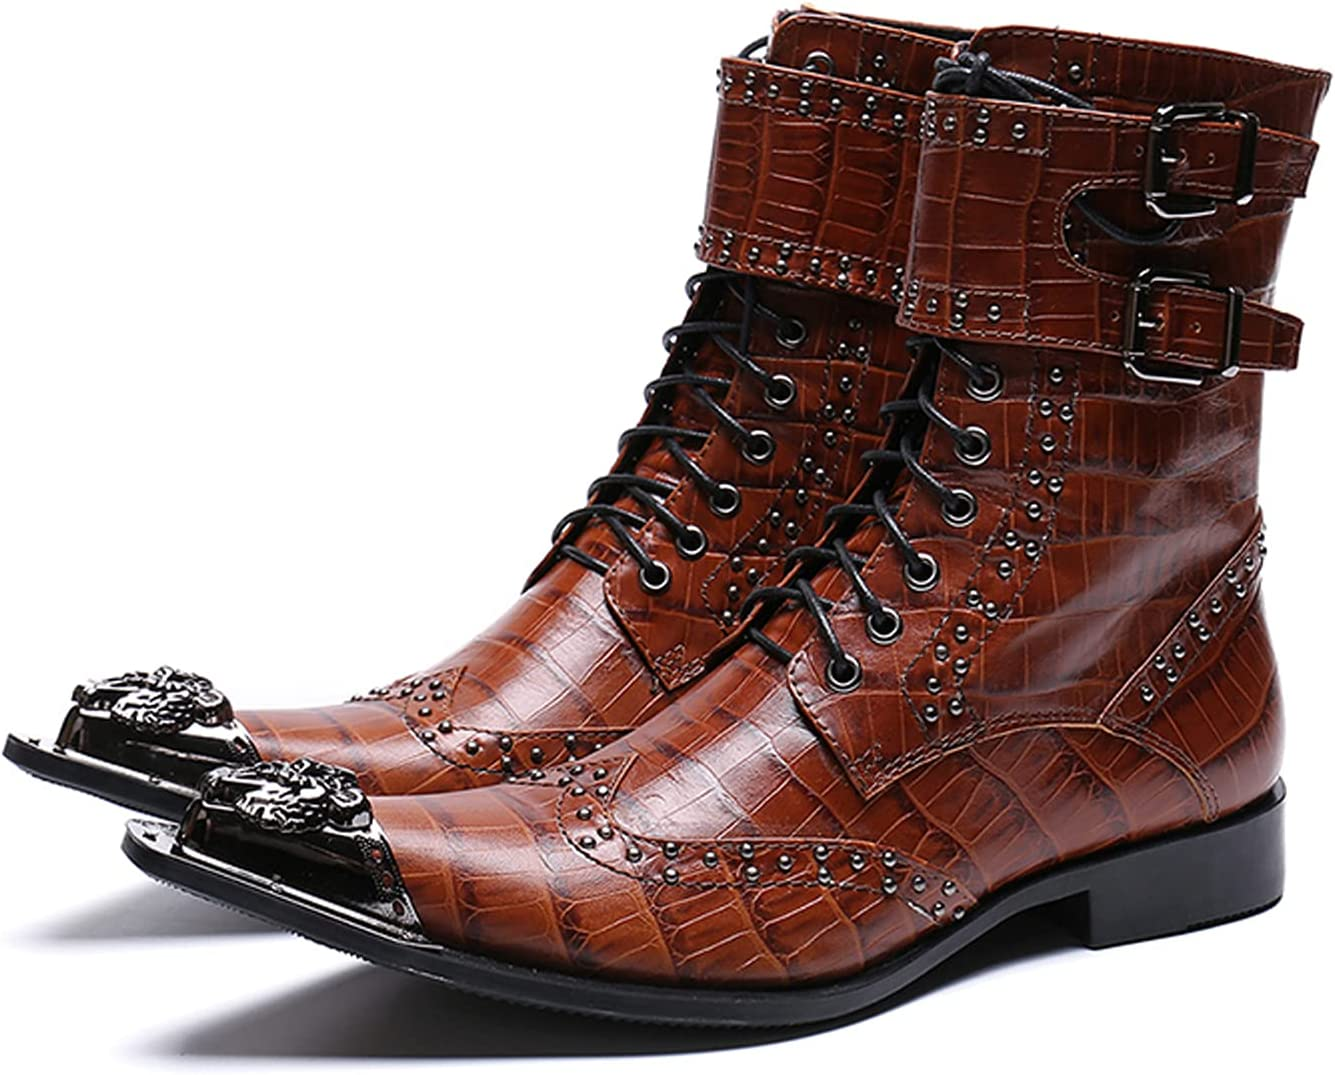 Max 81% OFF Dark Brown Pointed Toe Chelsea Rider Reservation Side Zipper wit Boots